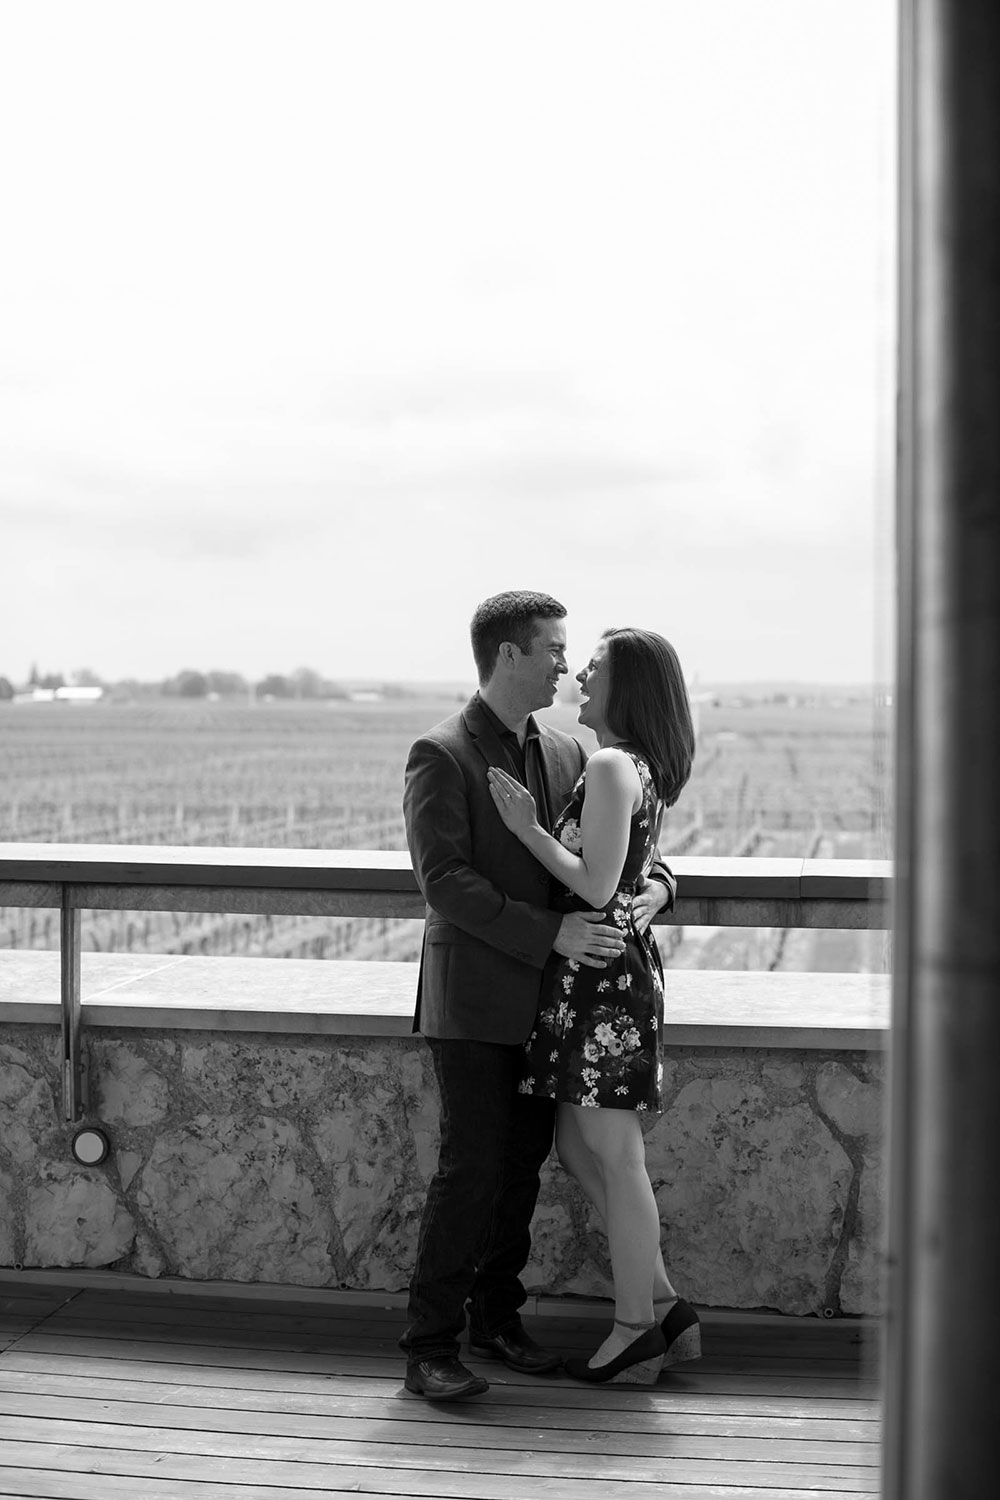 Niagara-on-the-Lake-proposals-Jackson-Triggs-Winery-photo-by-philosophy-studios-026.JPG